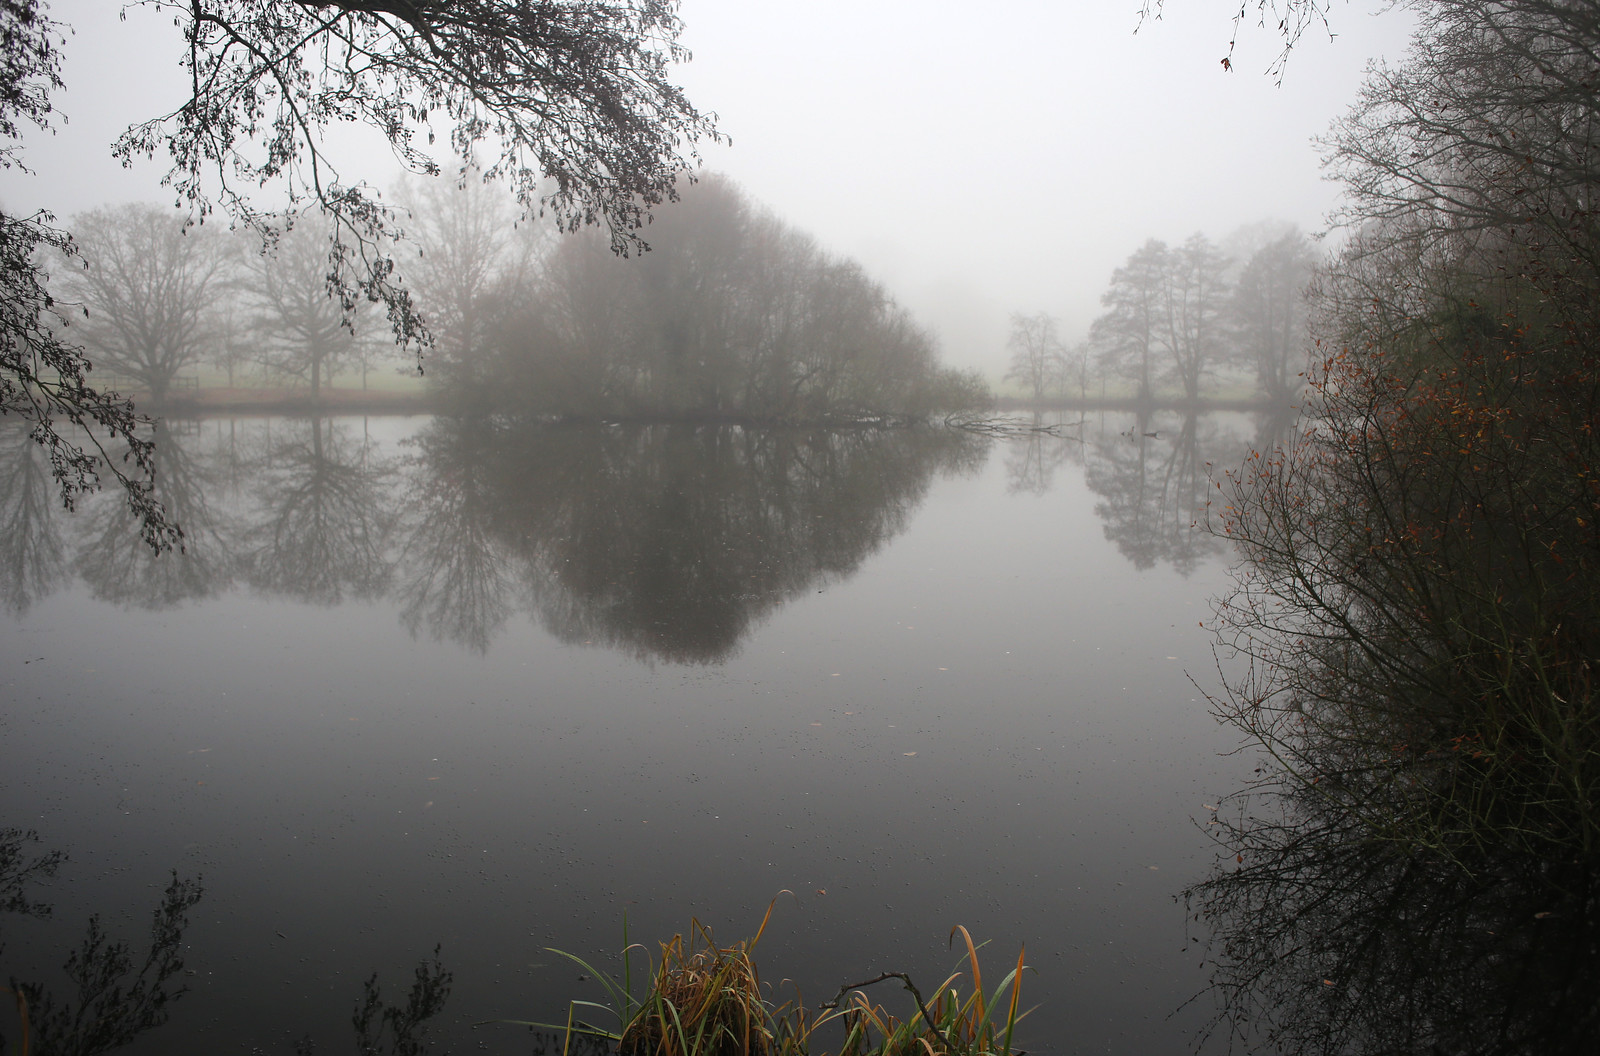 Loseley Park mist Mist on the pond in Loseley Park, Surrey